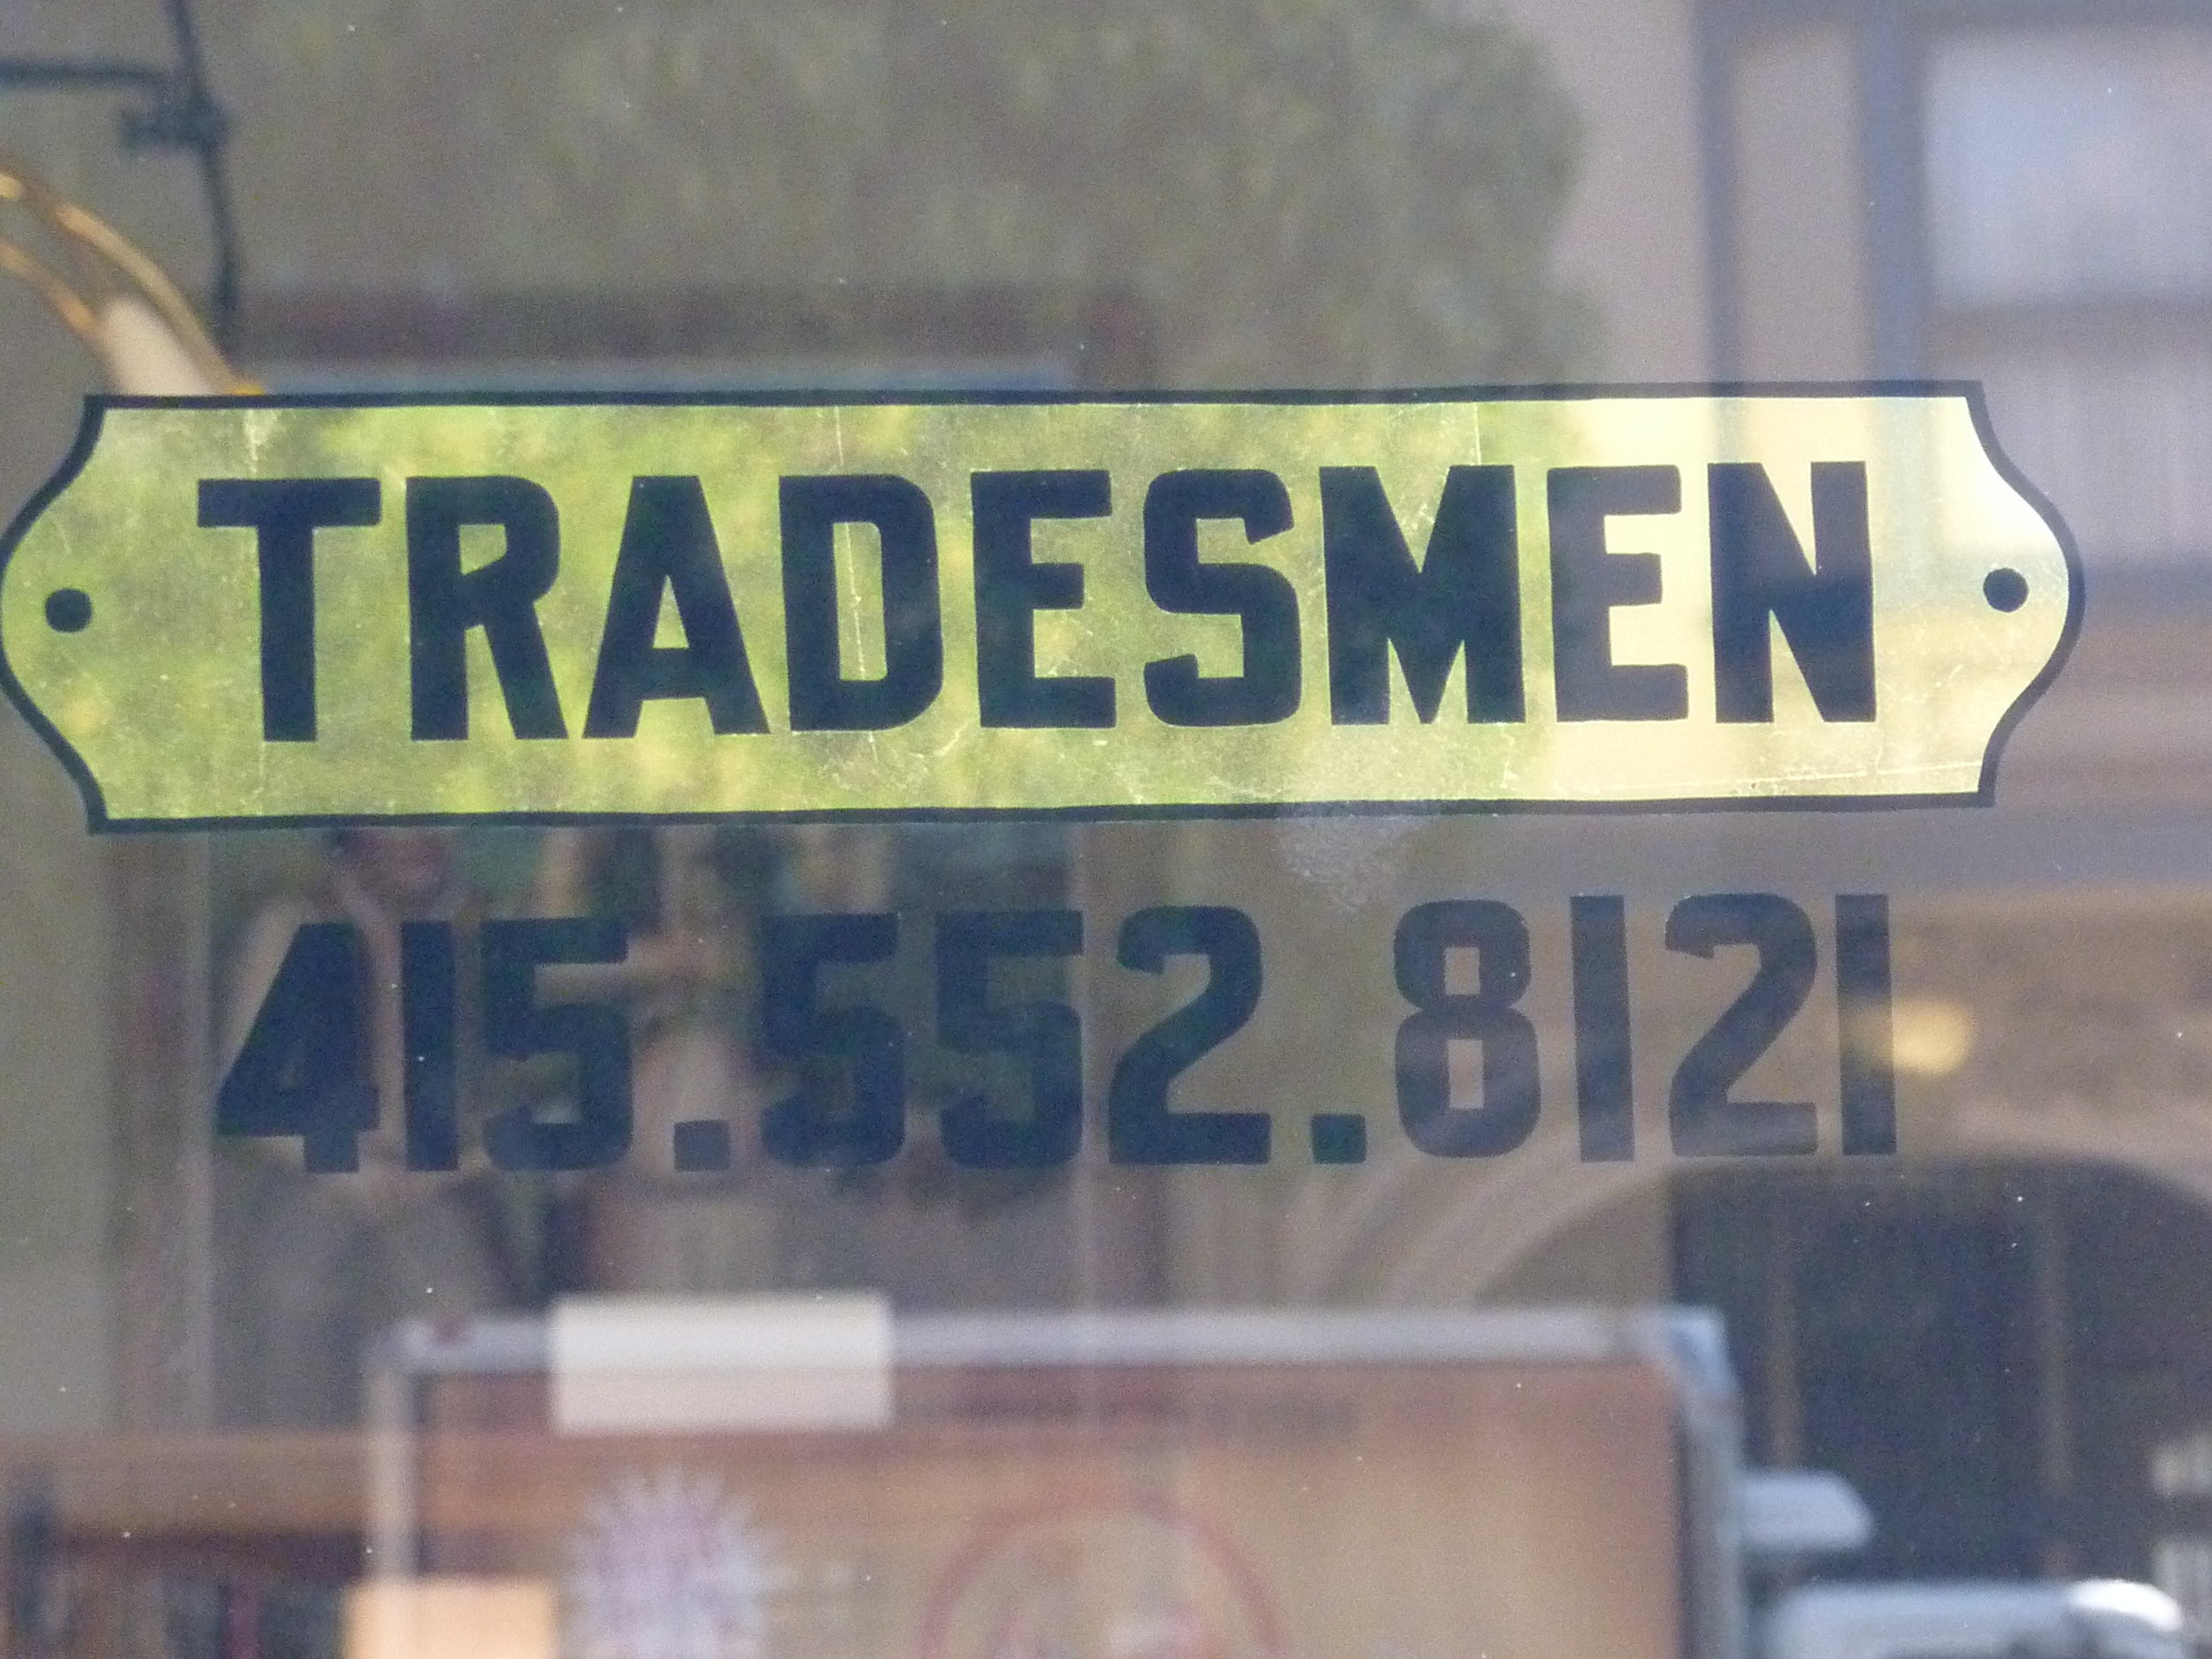 WINDOW-tradesmen_6105511922_o.jpg